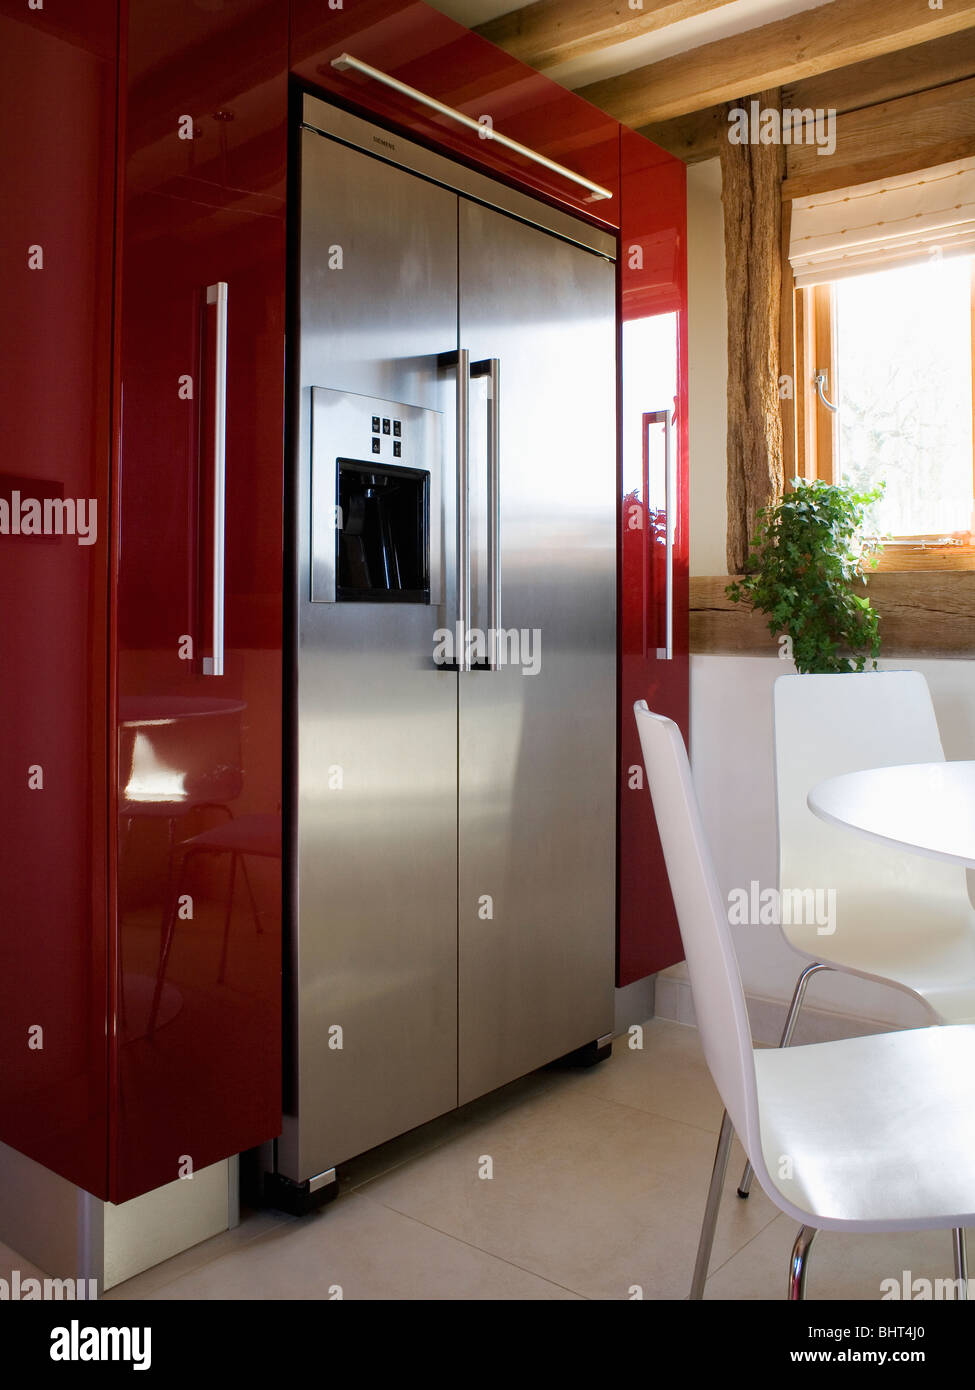 Large Stainless Steel American Style Fridge Freezer In